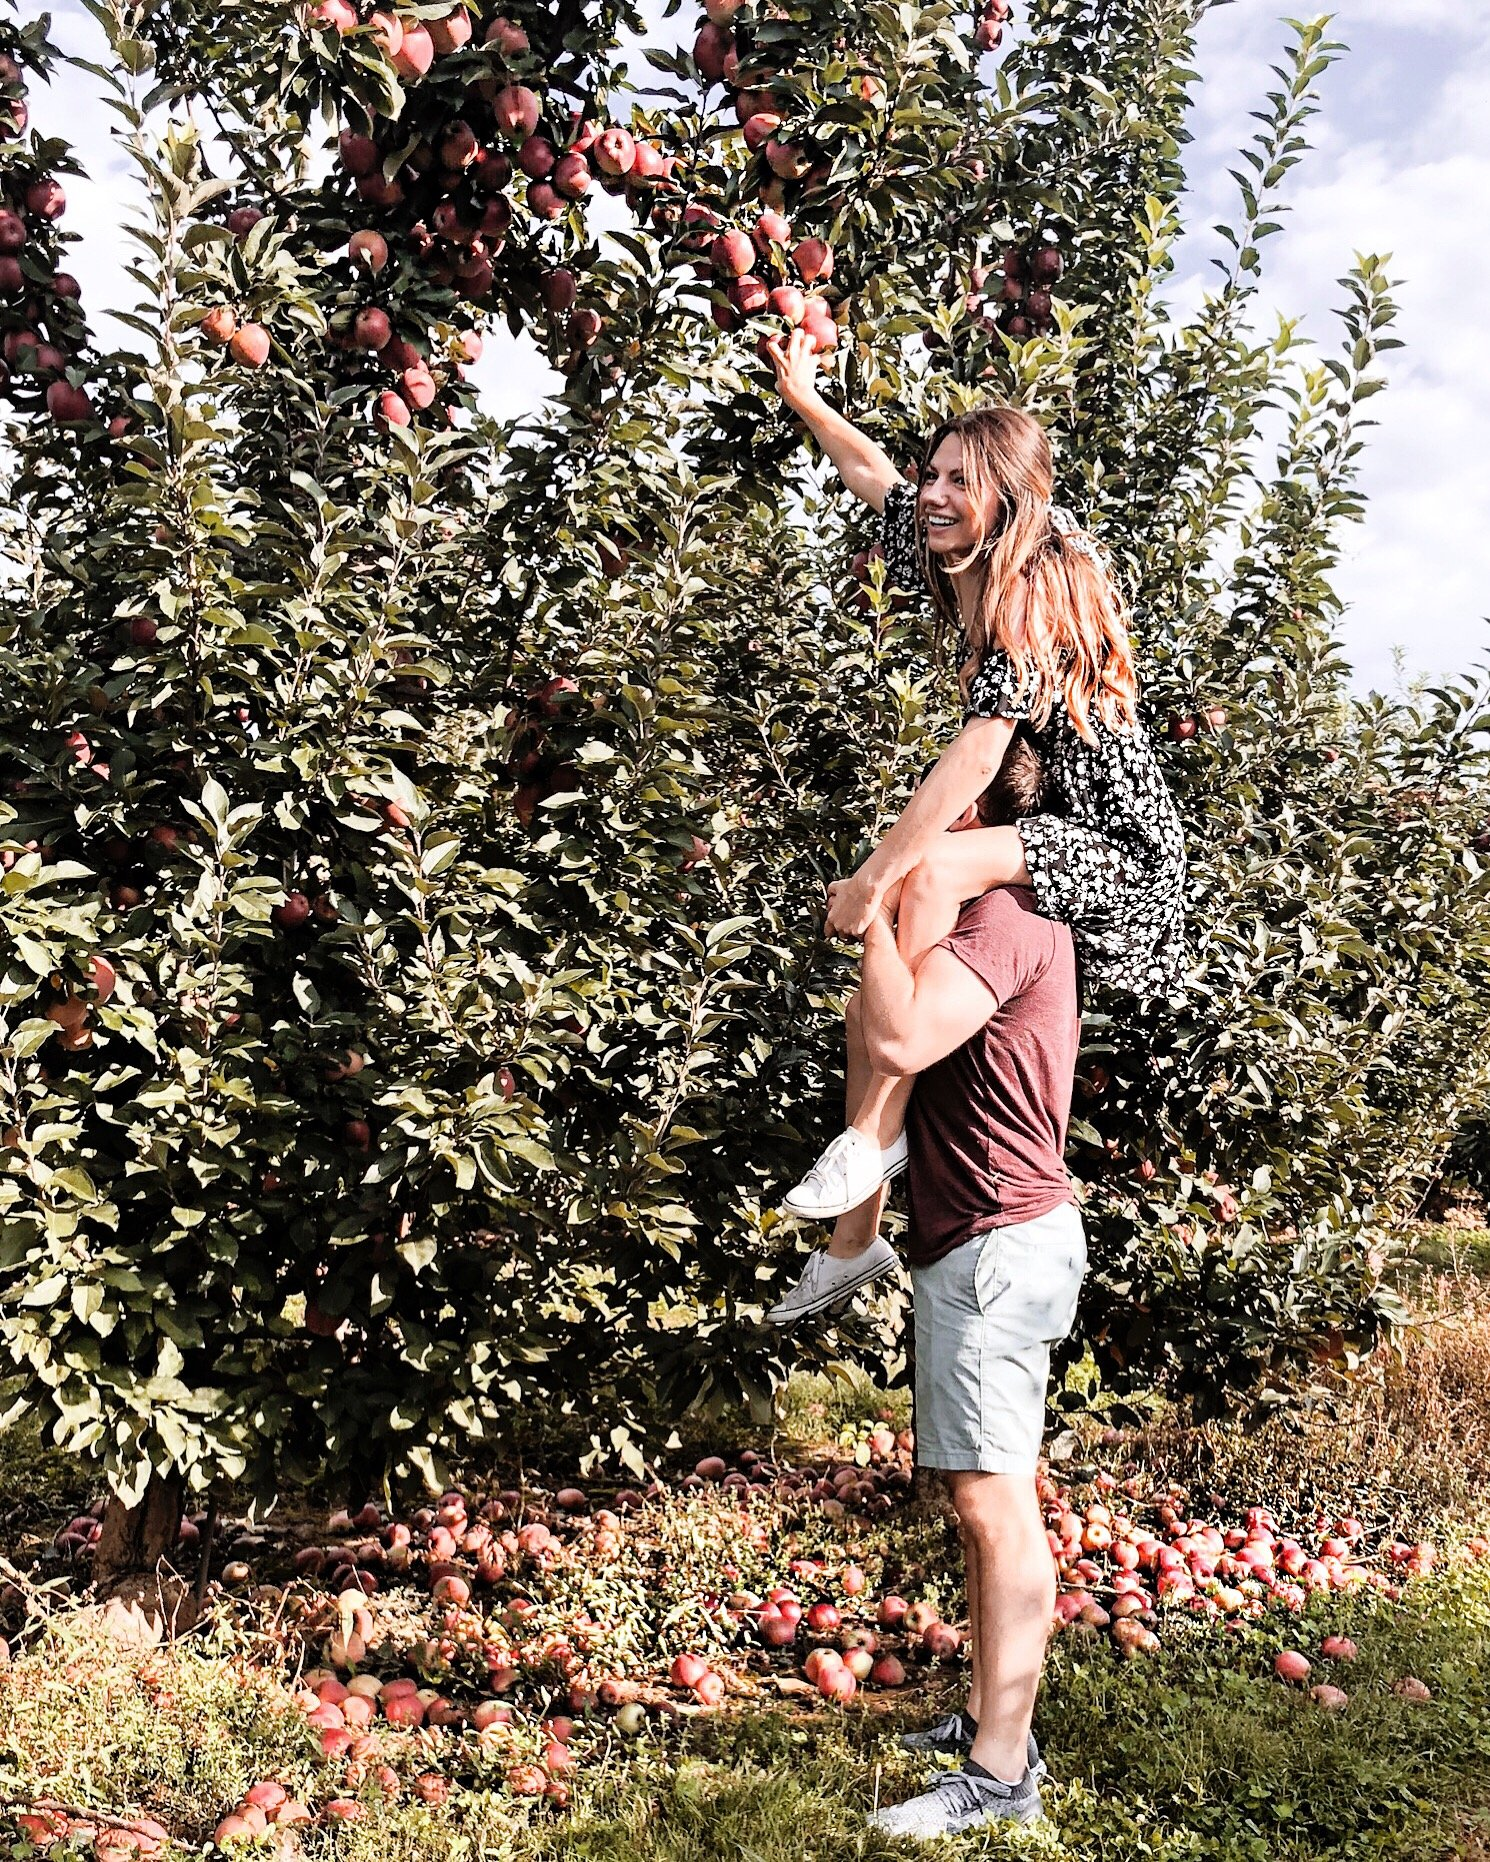 A man hoists a woman on his shoulders to pick apples off a tree.